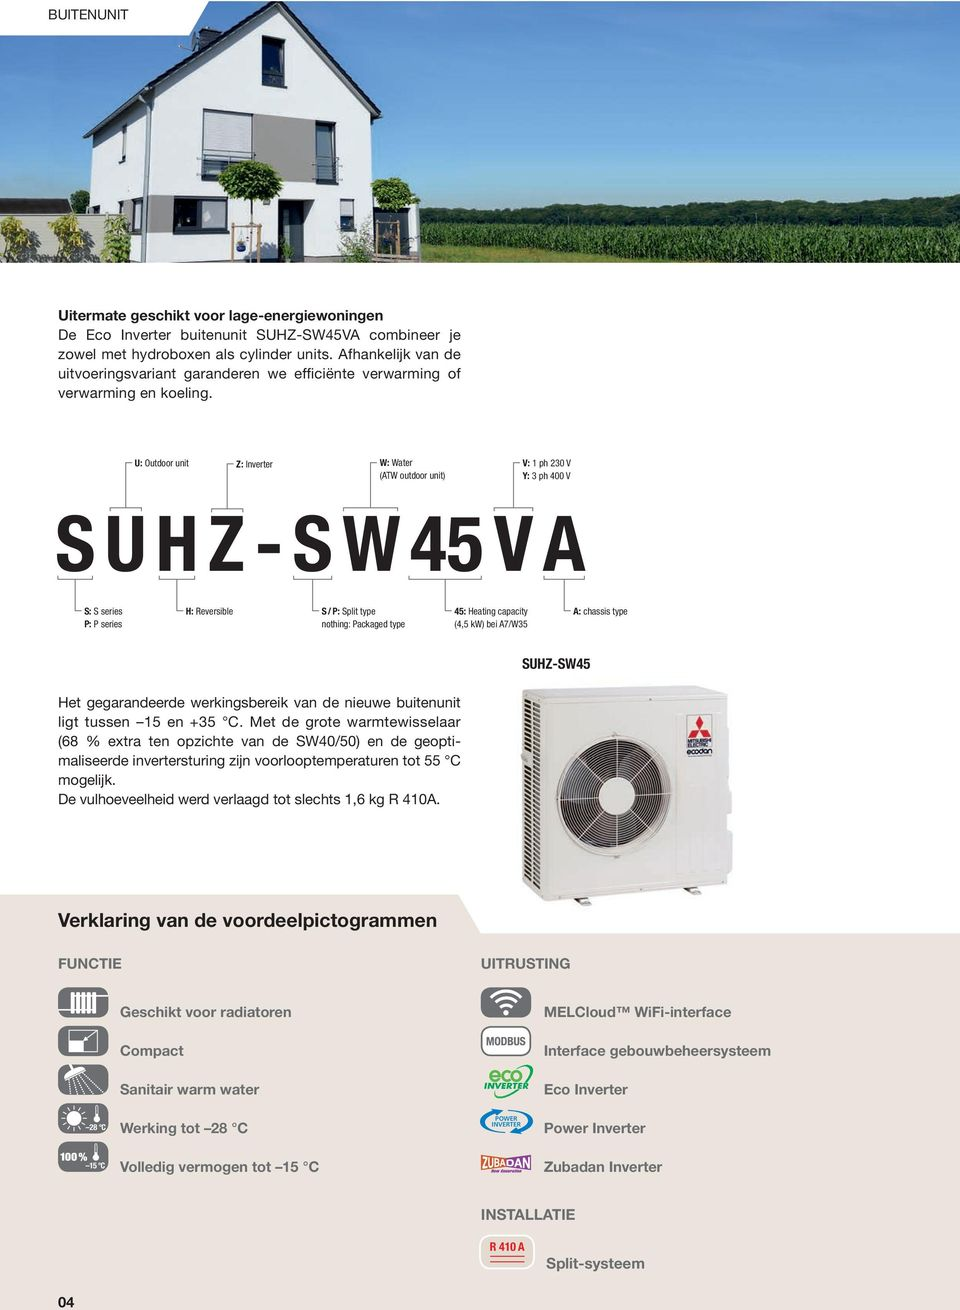 U: Outdoor unit Z: Inverter W: Water (ATW outdoor unit) V: 1 ph 230 V Y: 3 ph 400 V S U H Z - S W 45 V A S: S series P: P series H: Reversible S / P: Split type nothing: Packaged type 45: Heating